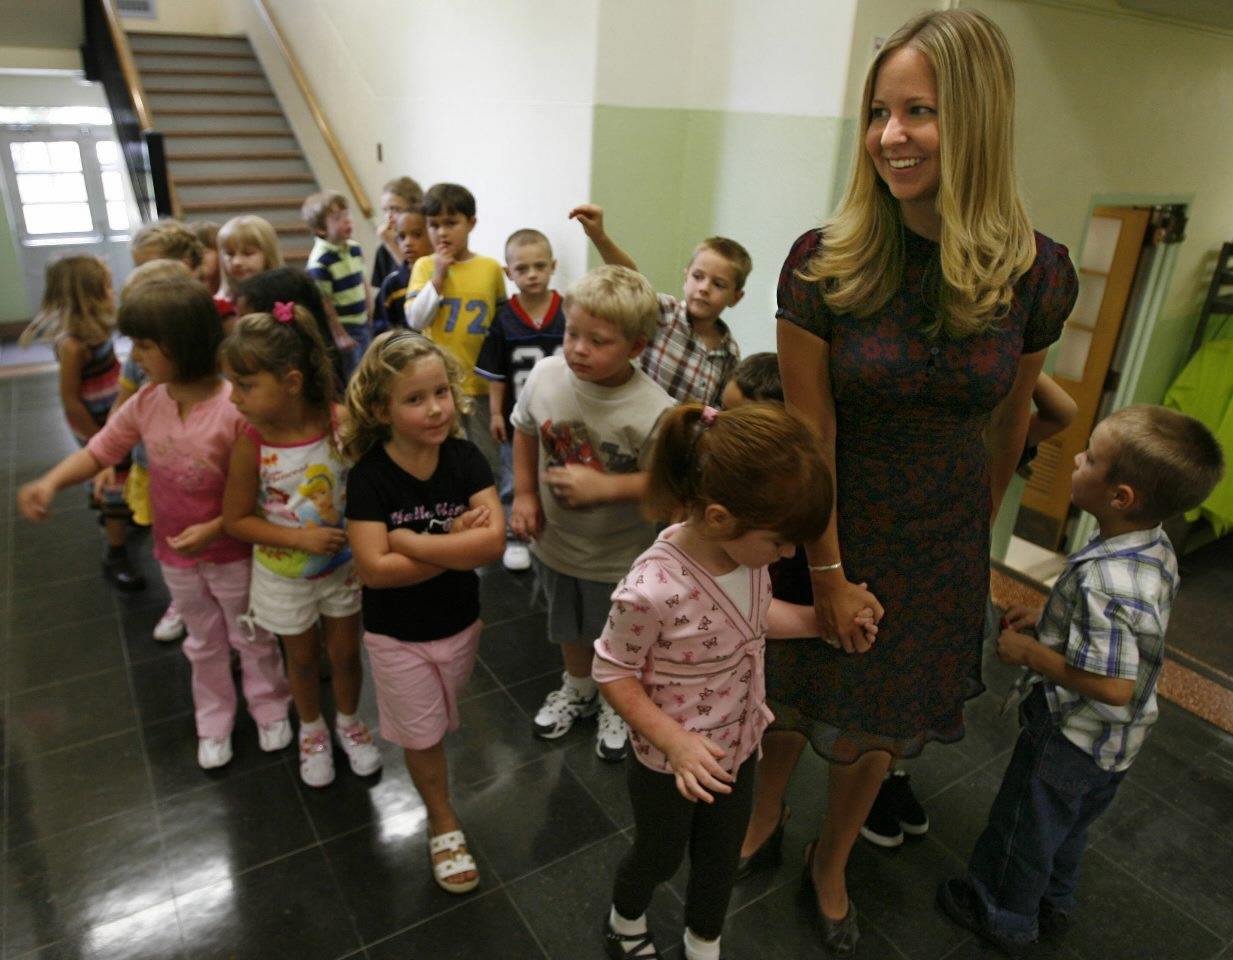 Buffalo News file photo    In this photo from Sept. 5, 2001, kindergarten teacher Kelly Regan leads a group of her students on a tour of Washington Hunt Elementary School in Lockport. City Youth and Recreation Director Melissa I. Junke has proposed that the City of Lockport buy Washington Hunt Elementary School for use as a youth center.